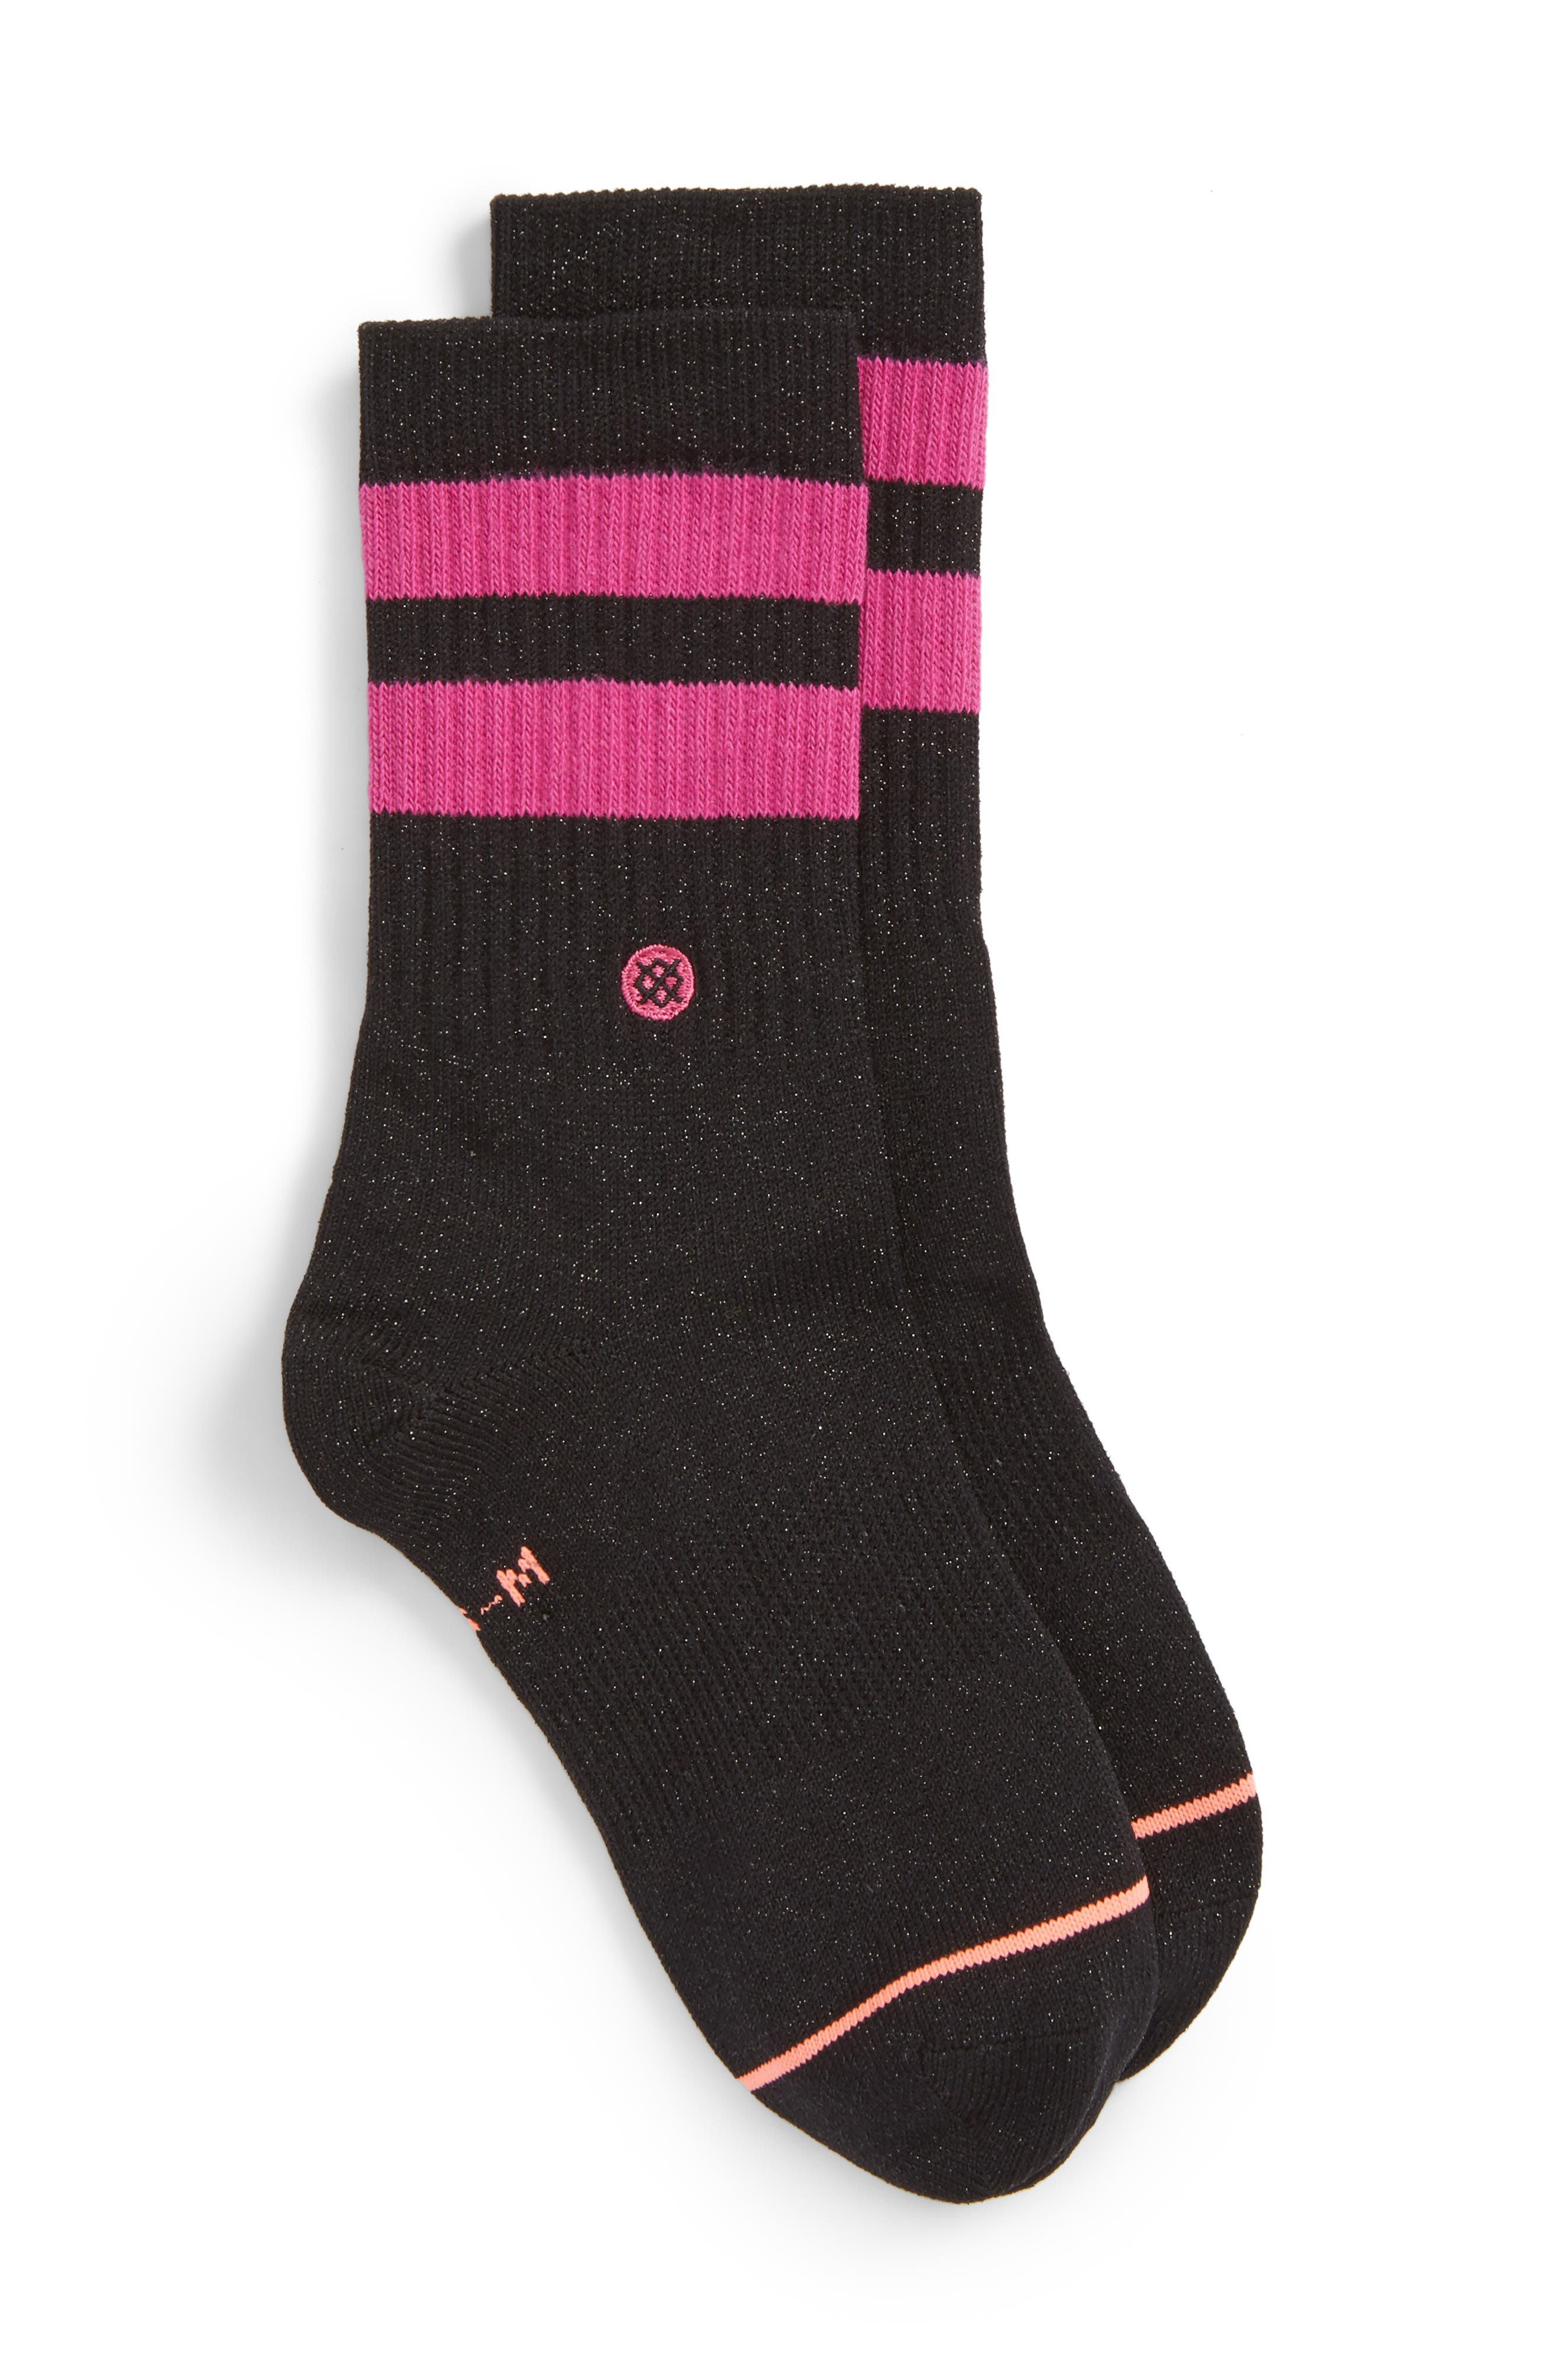 Harmony Crew Socks,                             Main thumbnail 1, color,                             001